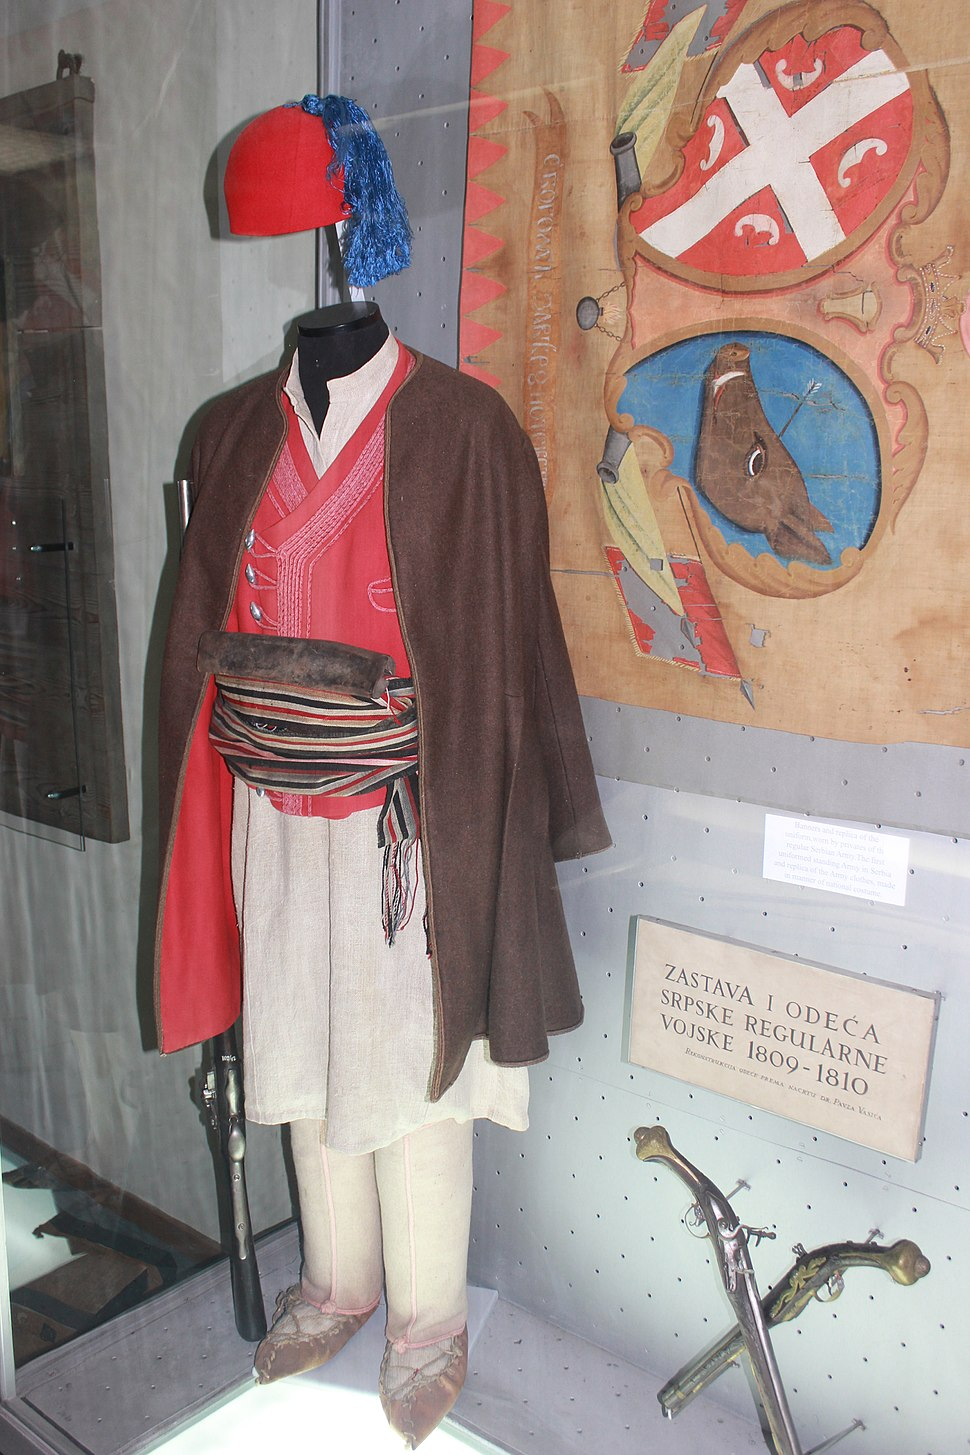 Uniforme of Serbian rebel army 1809